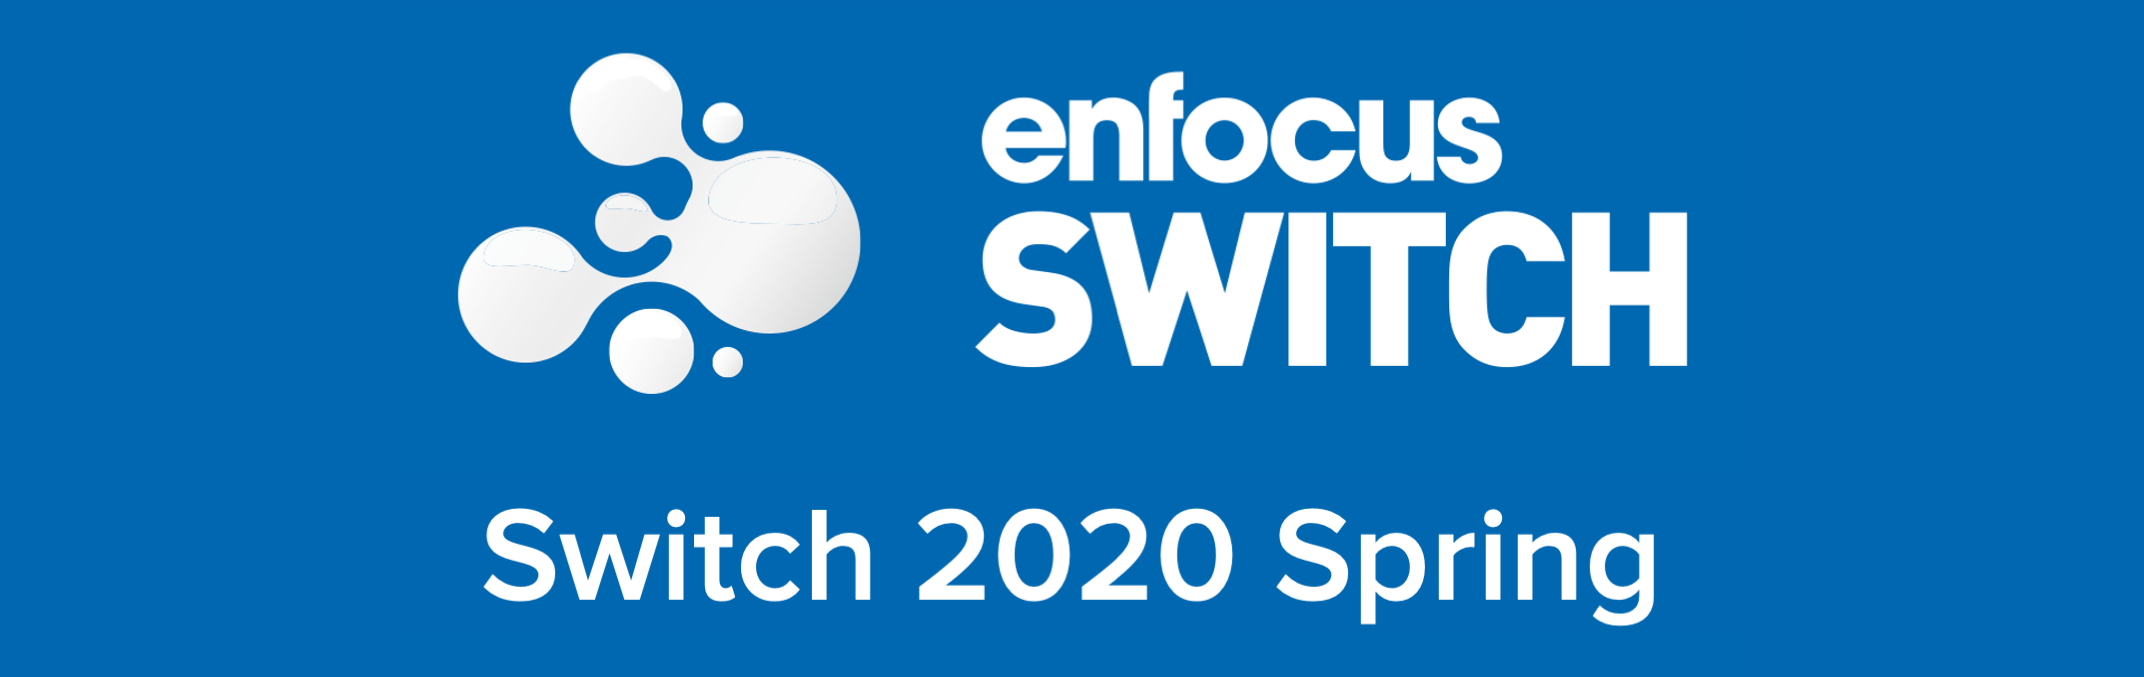 Switch 2020 springpng